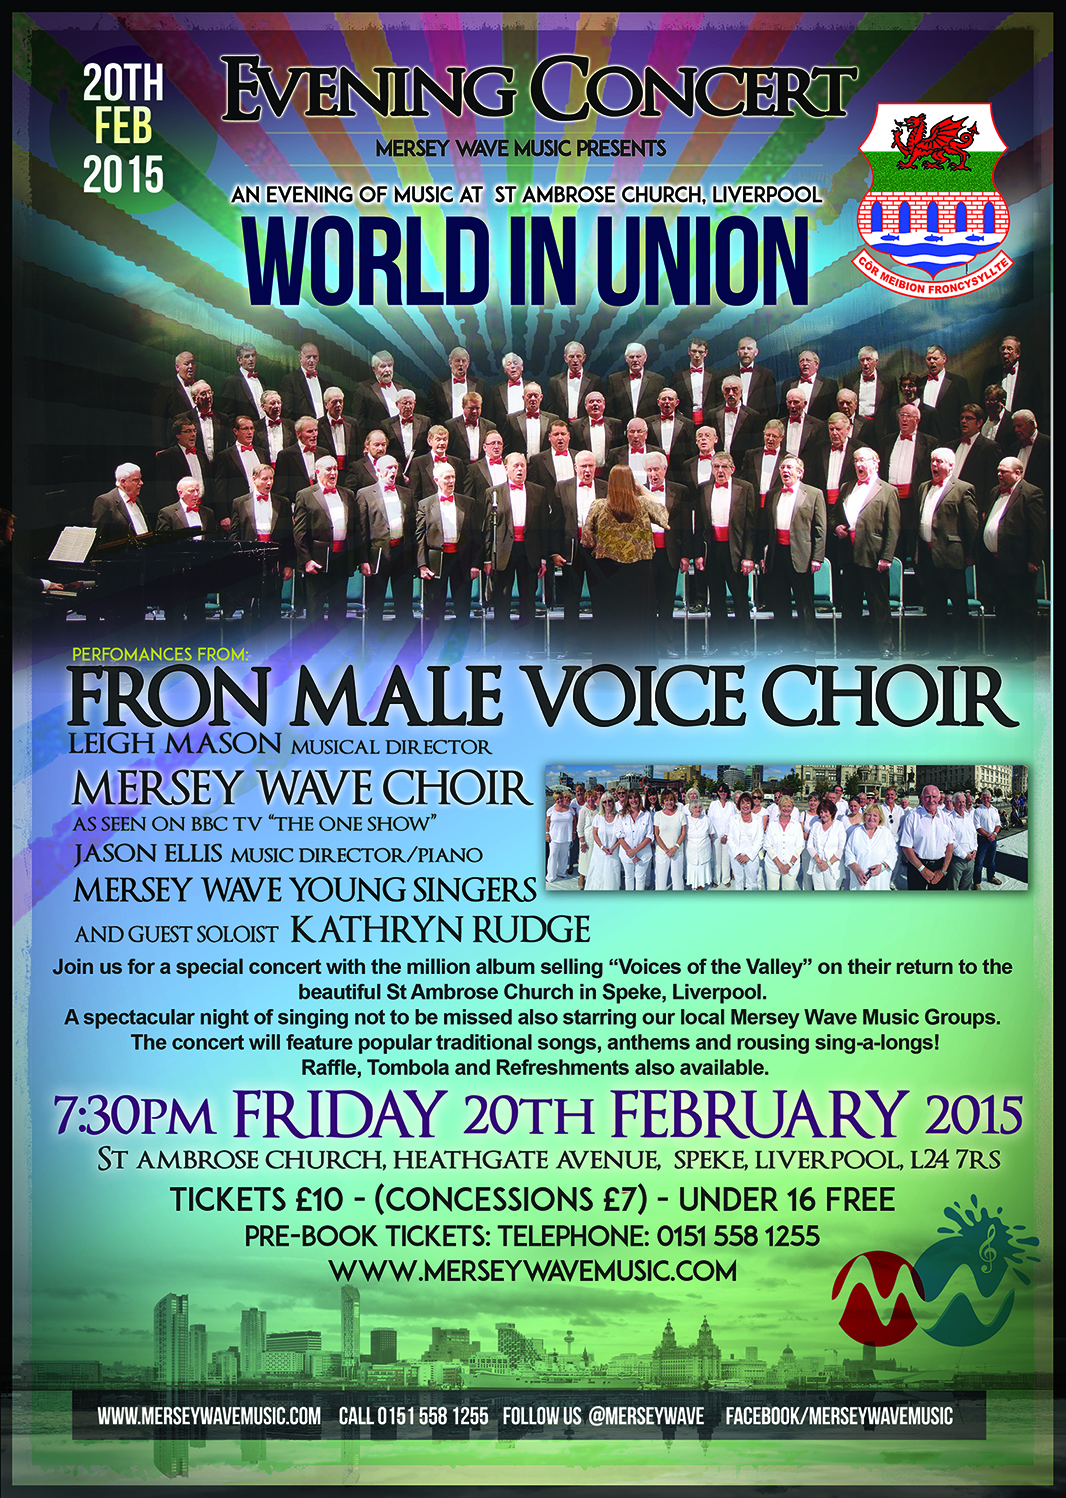 fron male voice choir mersey wave